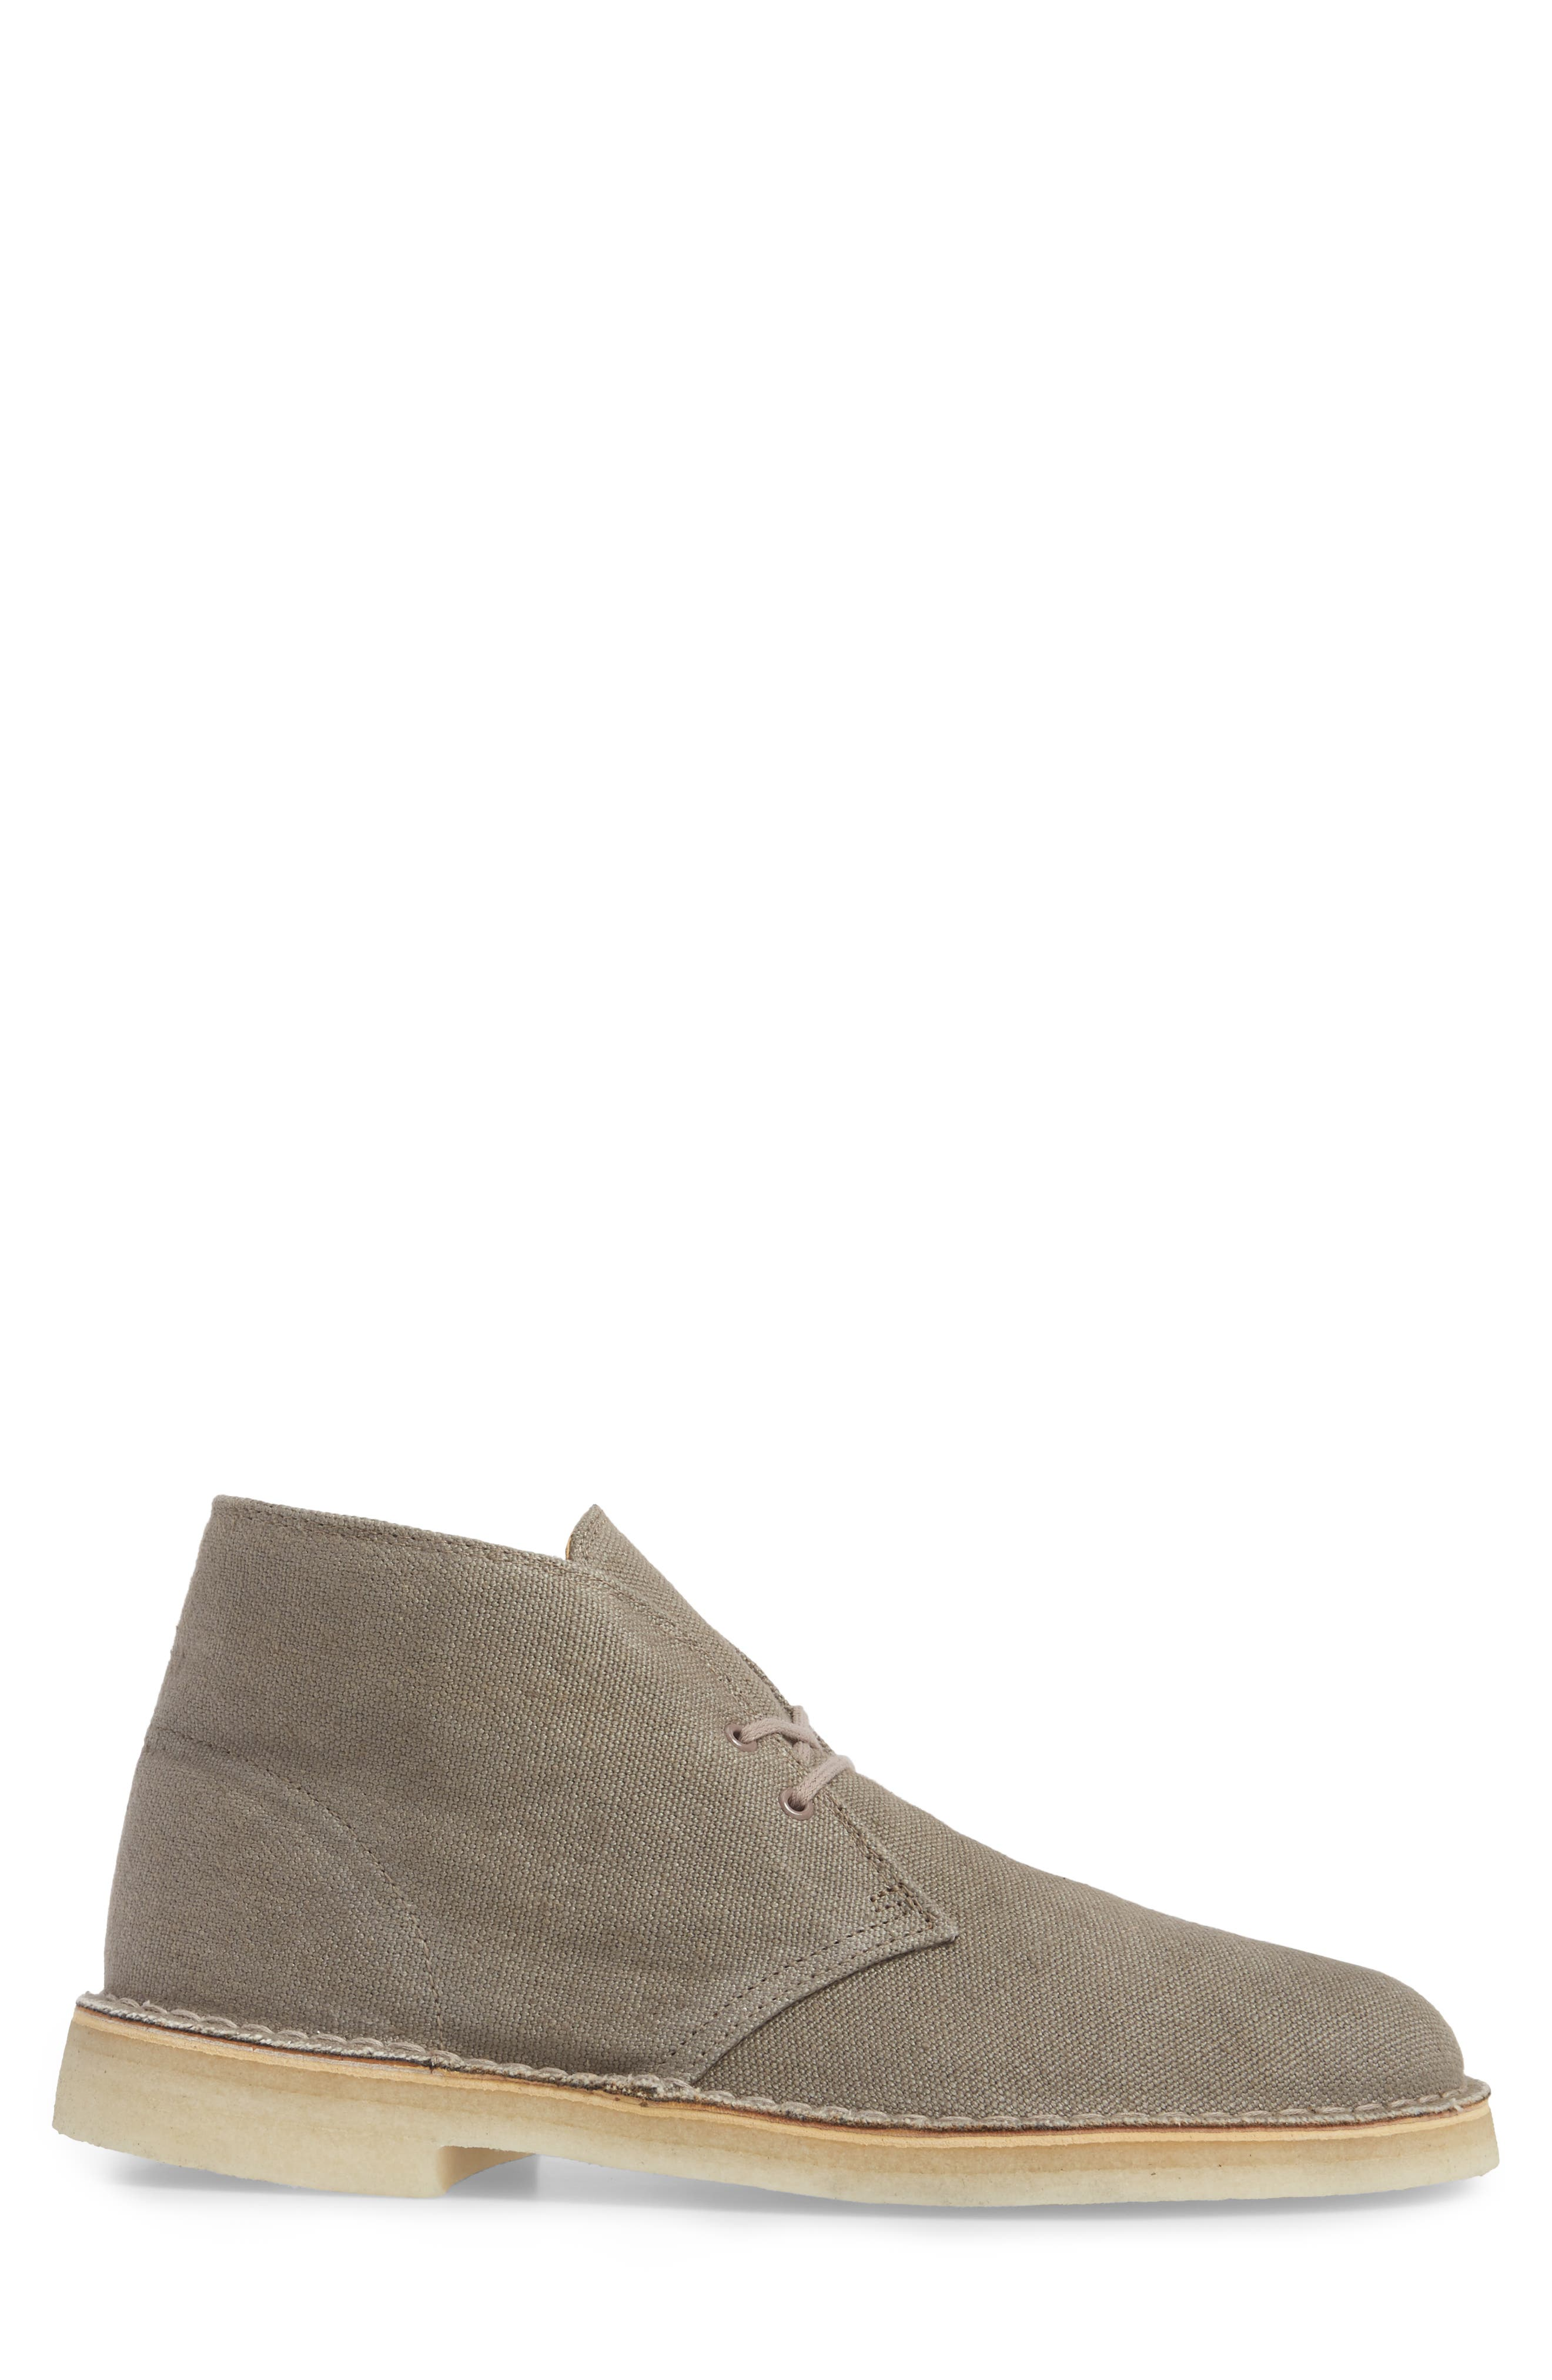 Clarks<sup>®</sup> Desert Chukka Boot,                             Alternate thumbnail 3, color,                             Taupe Canvas